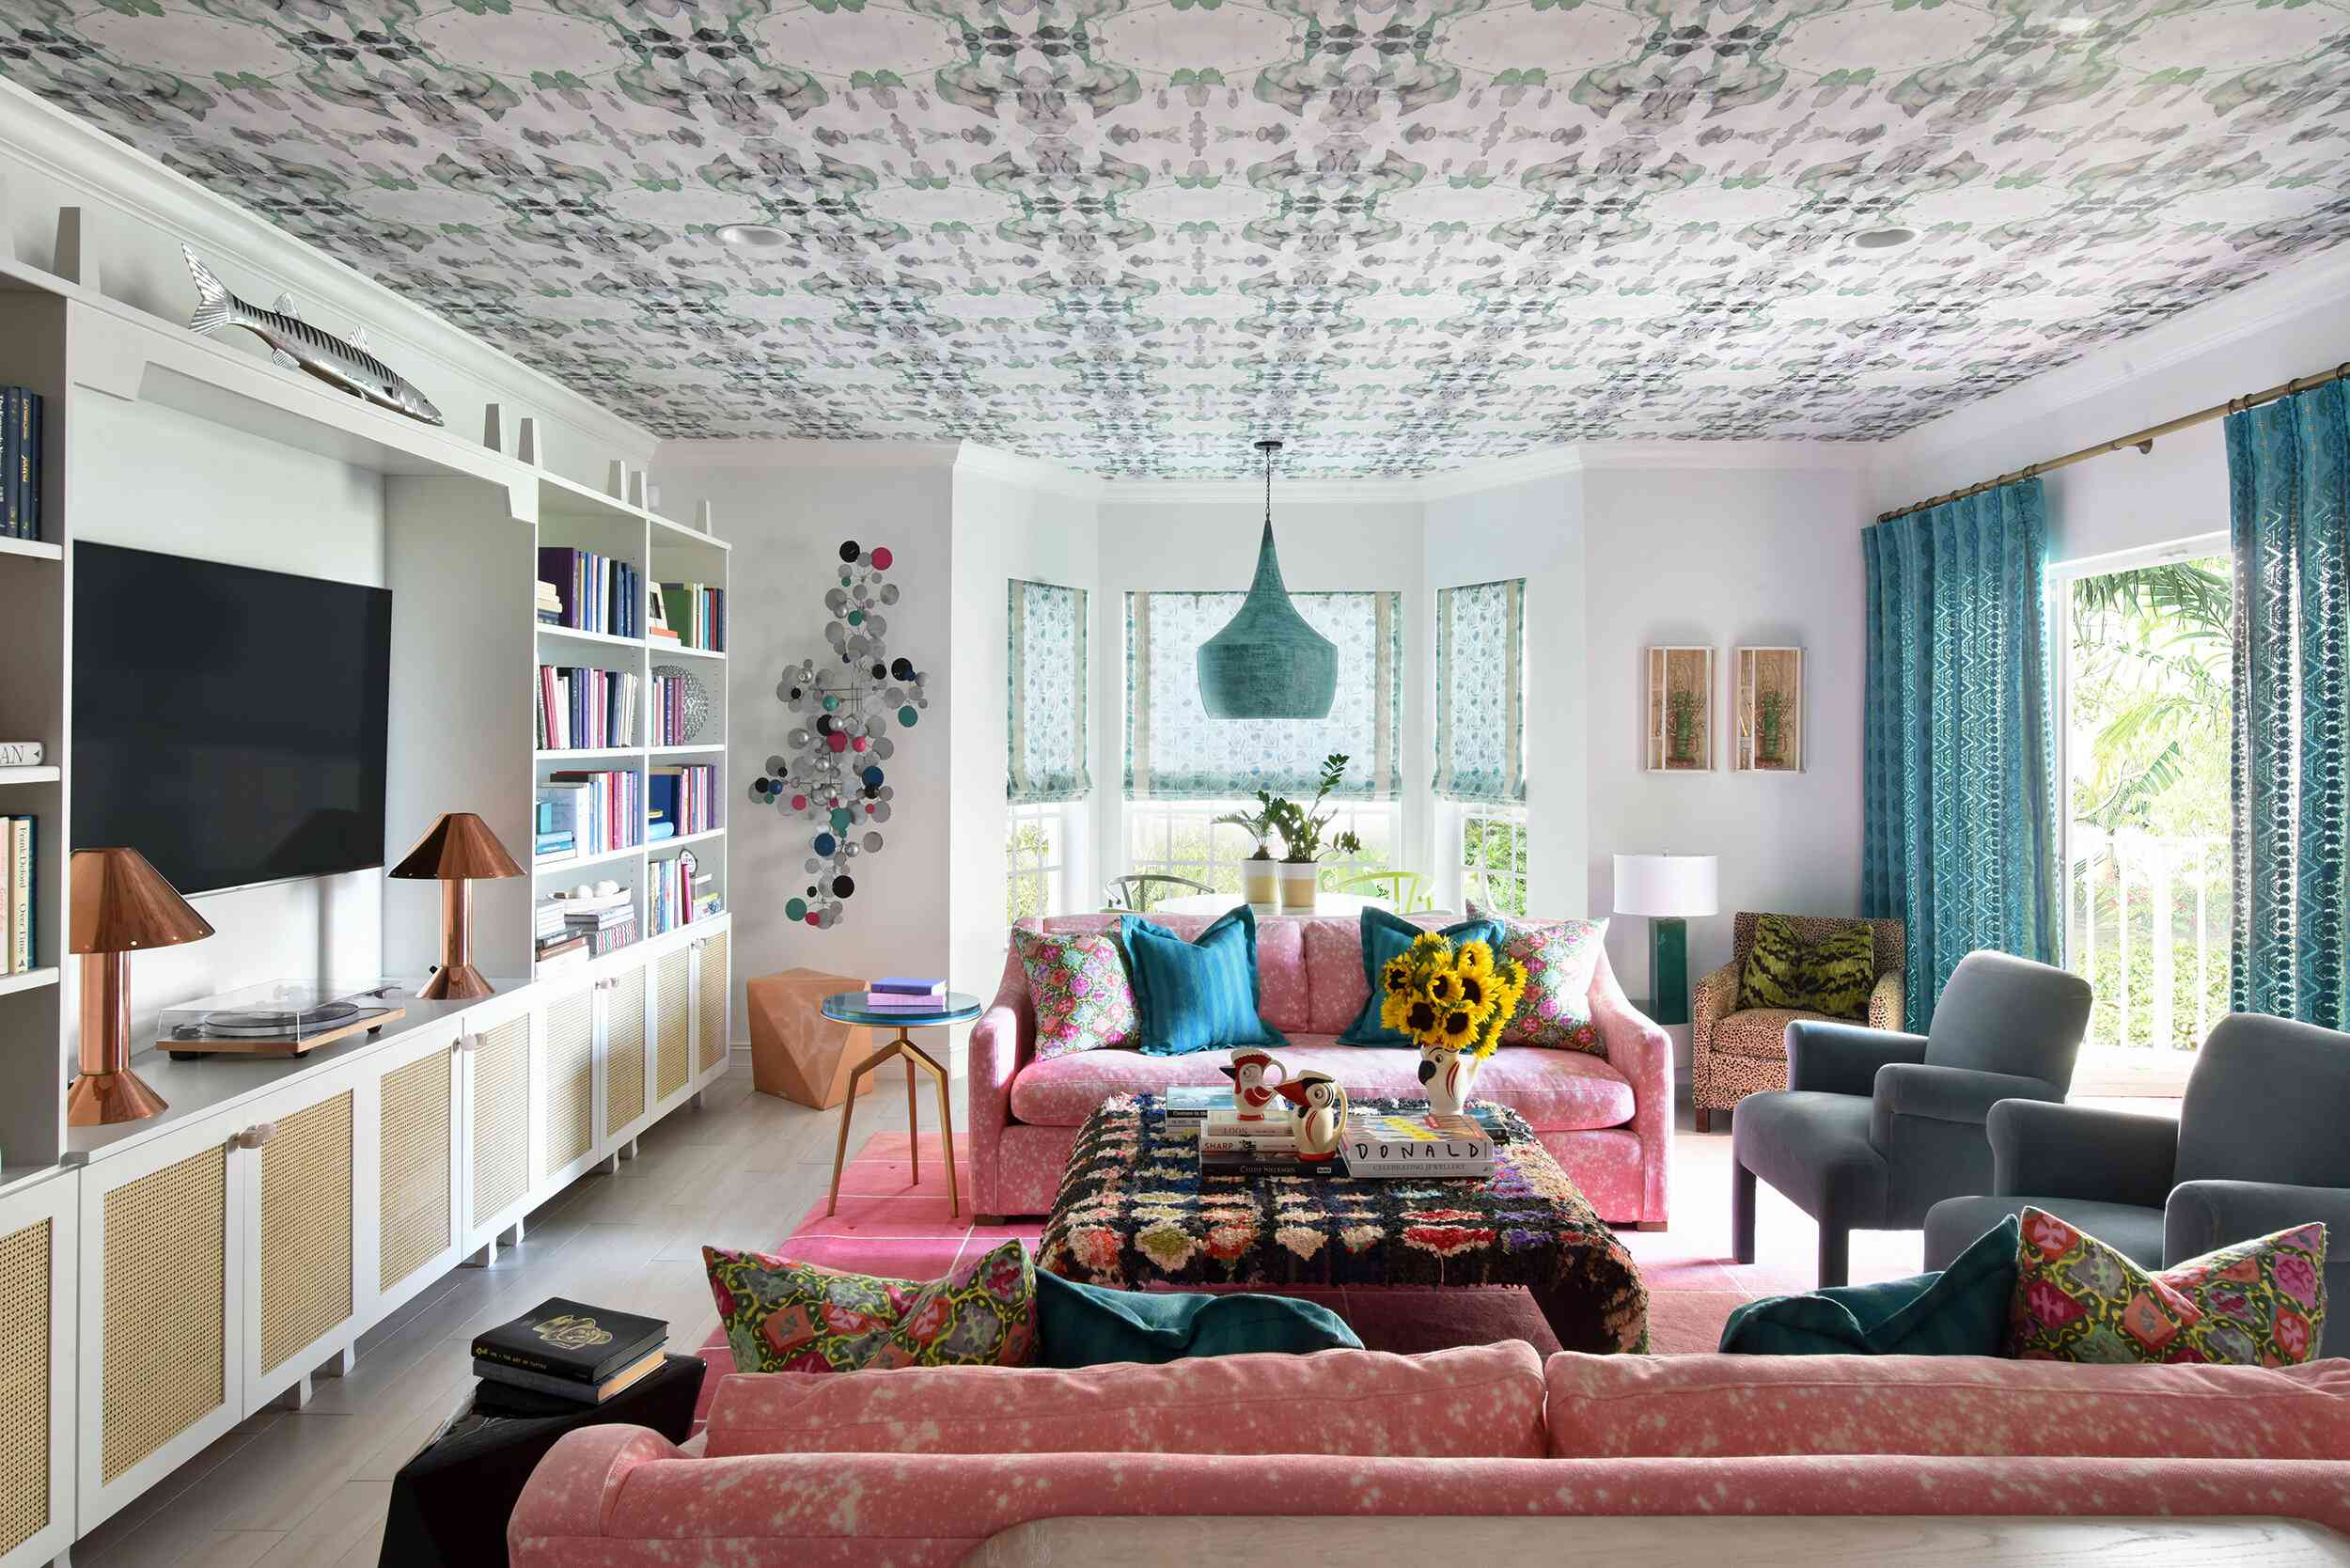 Maximal living room with wallpapered ceiling.